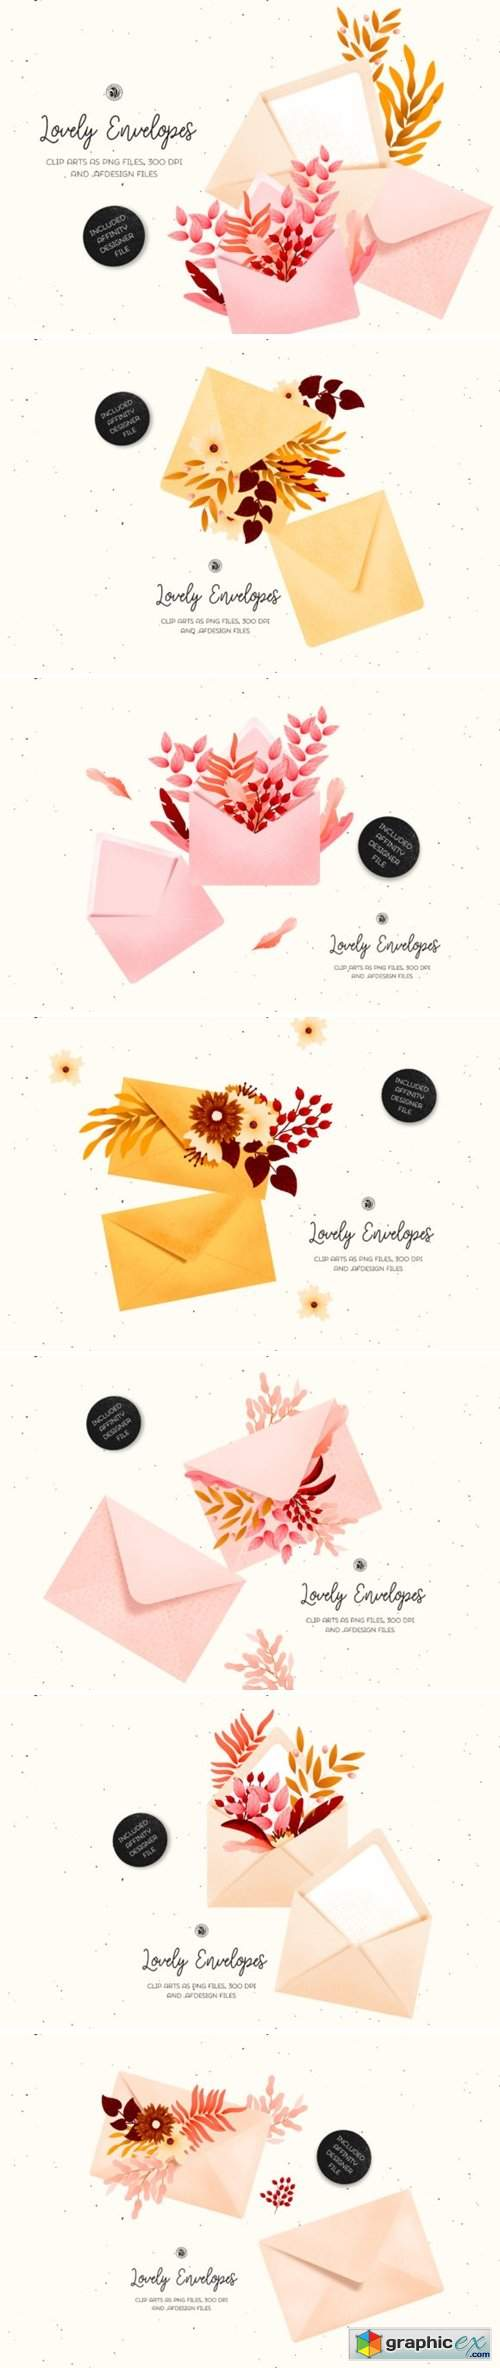 Lovely Envelopes